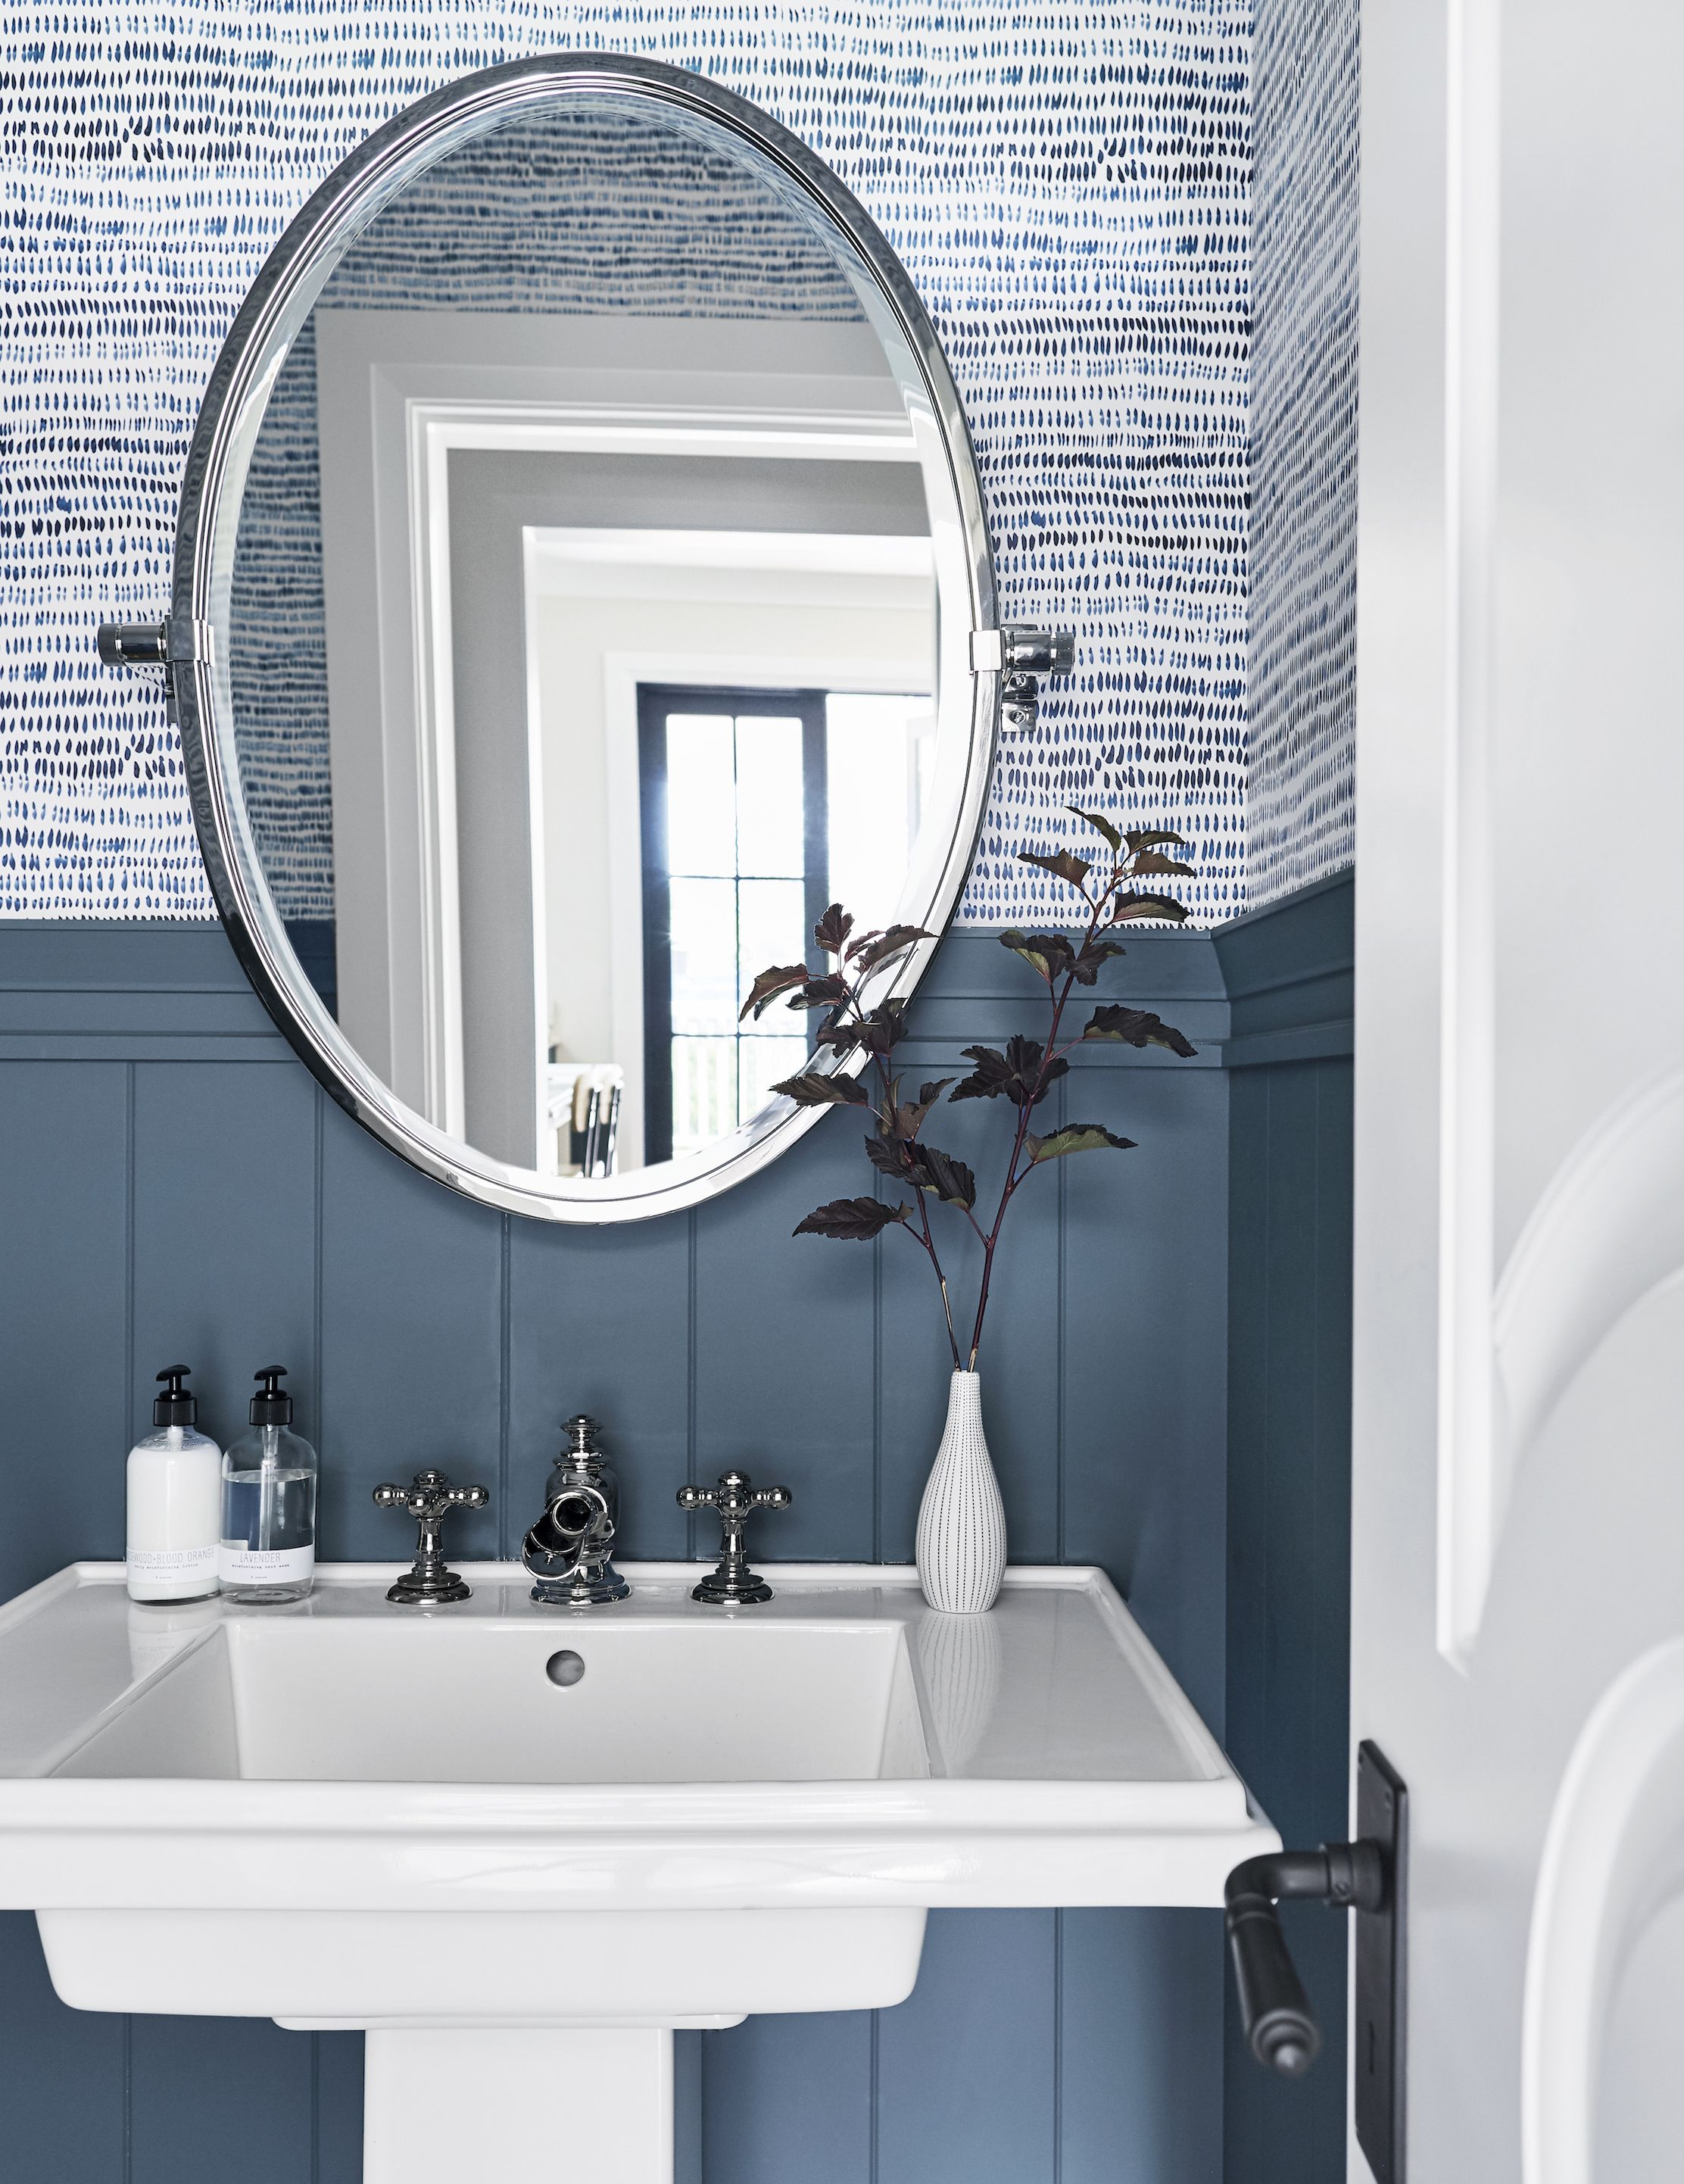 Free Download 28 Bathroom Wallpaper Ideas Best Wallpapers For Bathrooms 2224x2884 For Your Desktop Mobile Tablet Explore 22 Wallpaper Bathroom Bathroom Wallpapers Bathroom Wallpaper Bathroom Borders Wallpaper